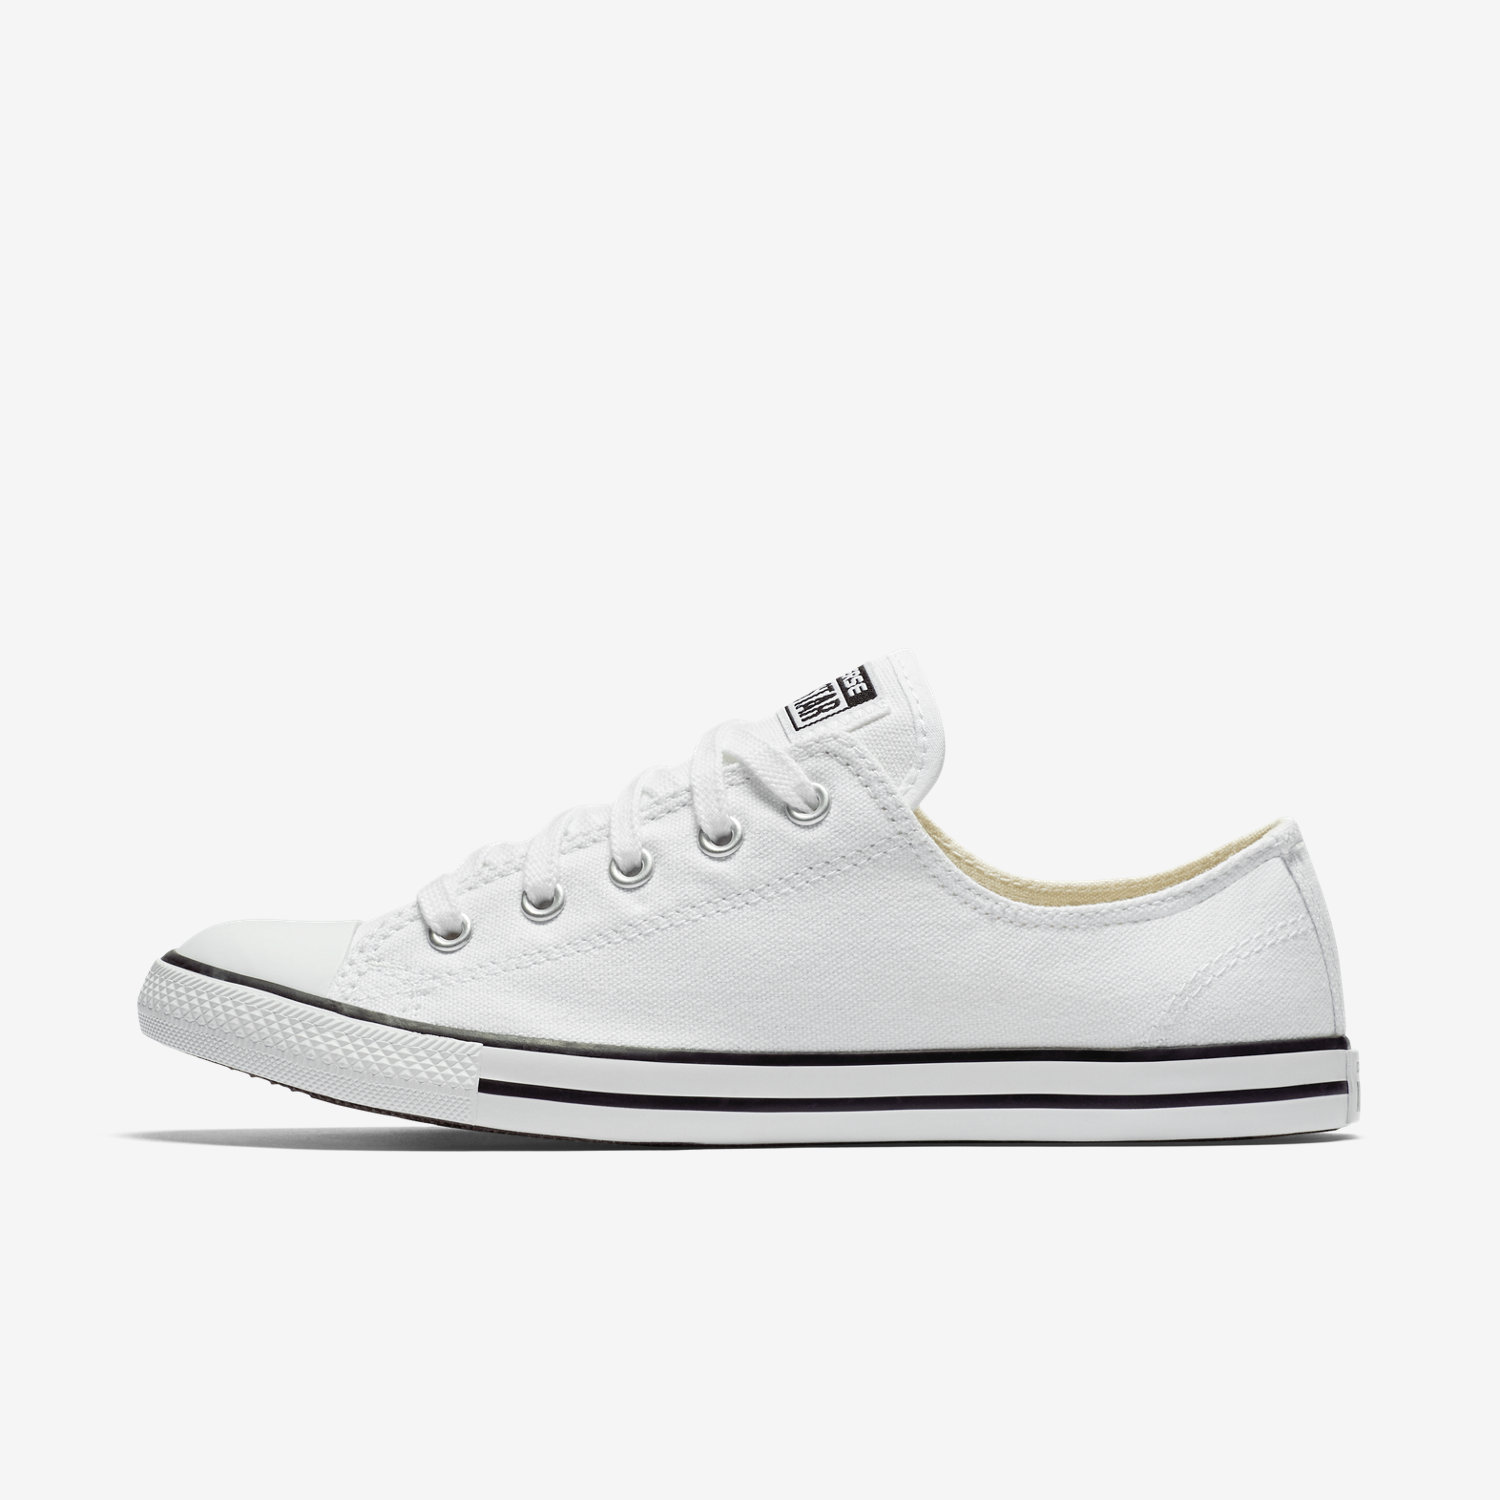 be9011e187bfc2 Converse Women   Buy Discount Shoes from Asics and Converse ...